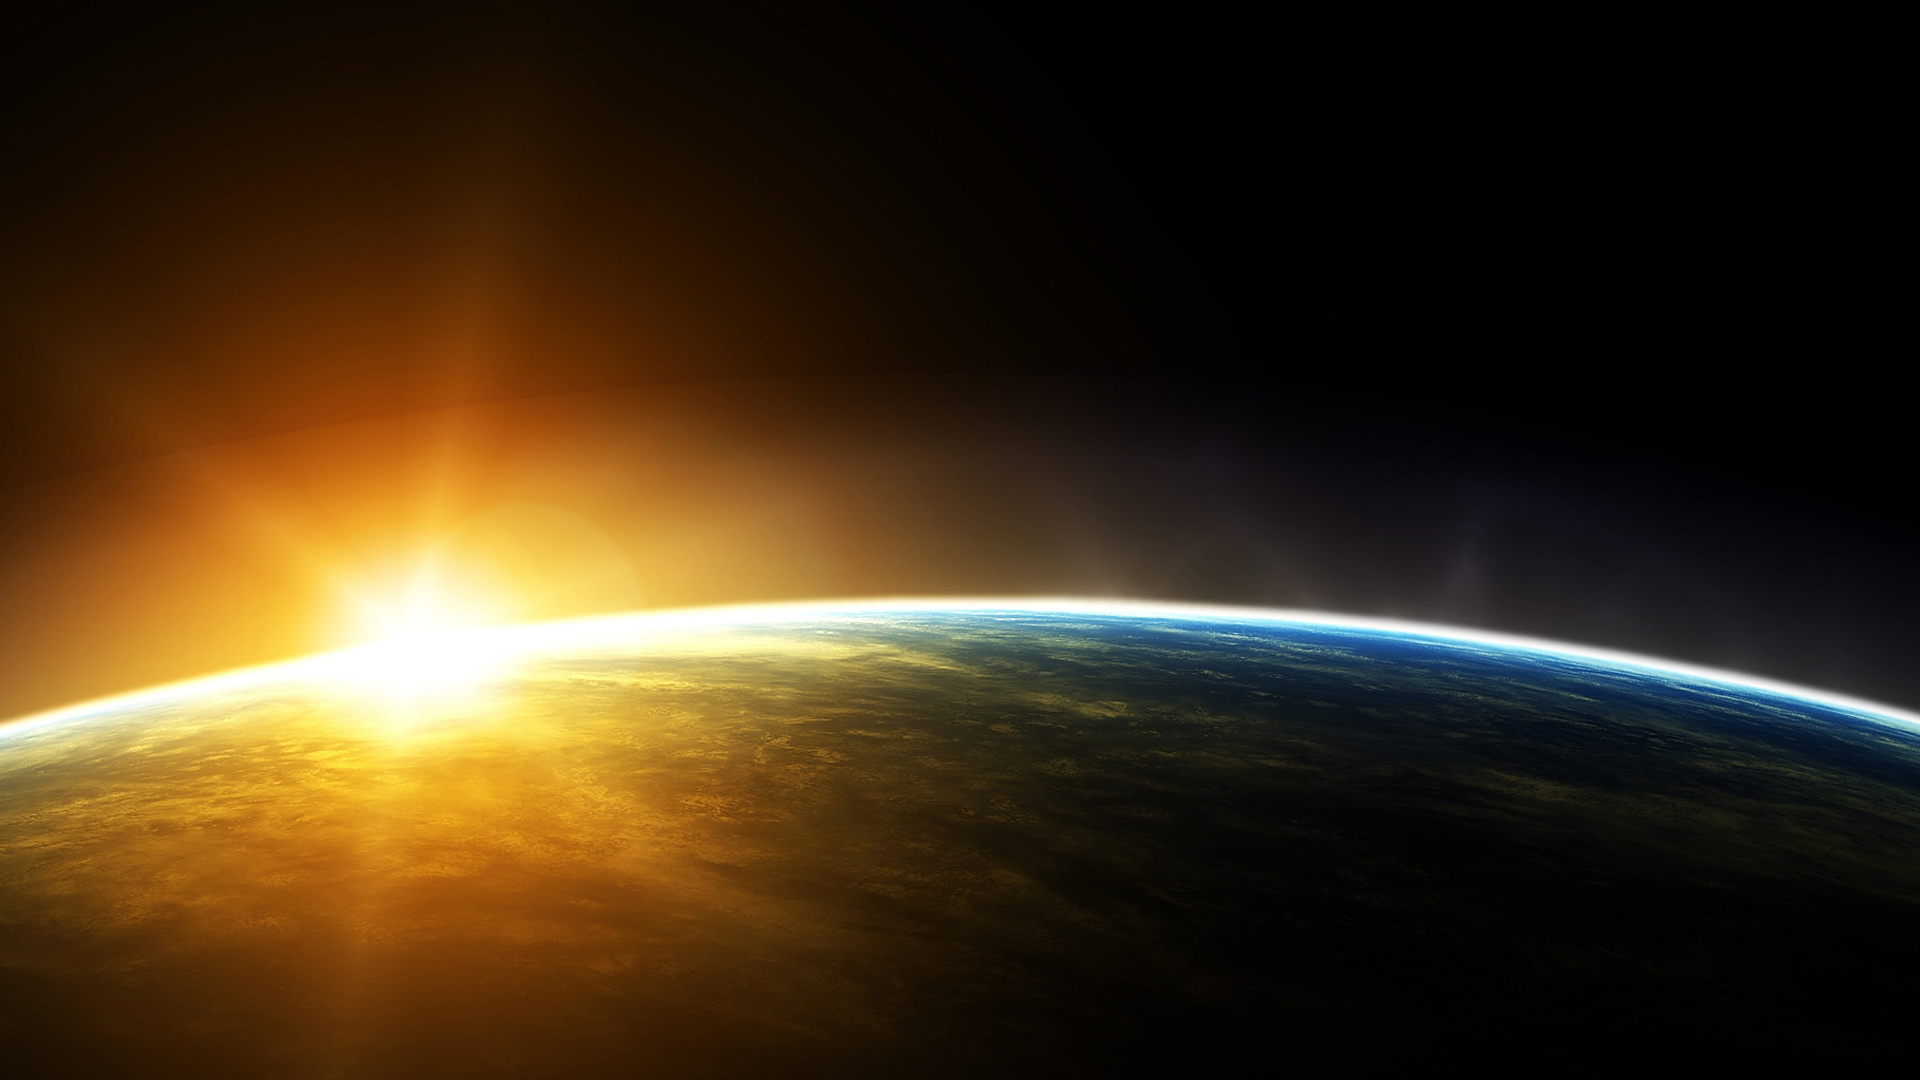 NASA Wallpaper Background 1920x1080 - WallpaperSafari